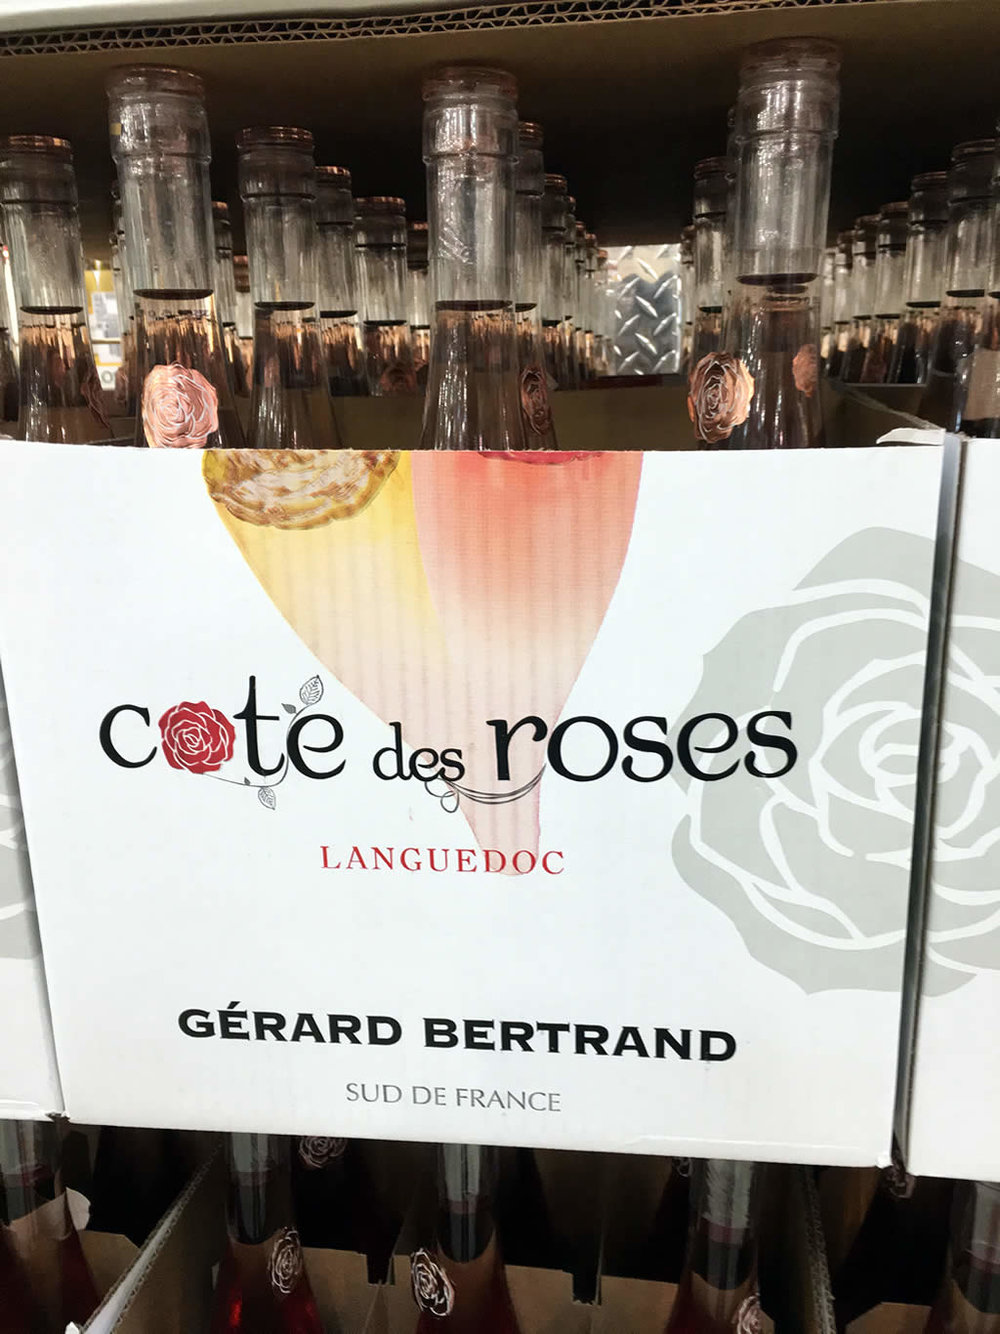 COTE DES ROSES AT COSTCO  - FABULOUS PRICE, STOCK UP FOR SUMMER